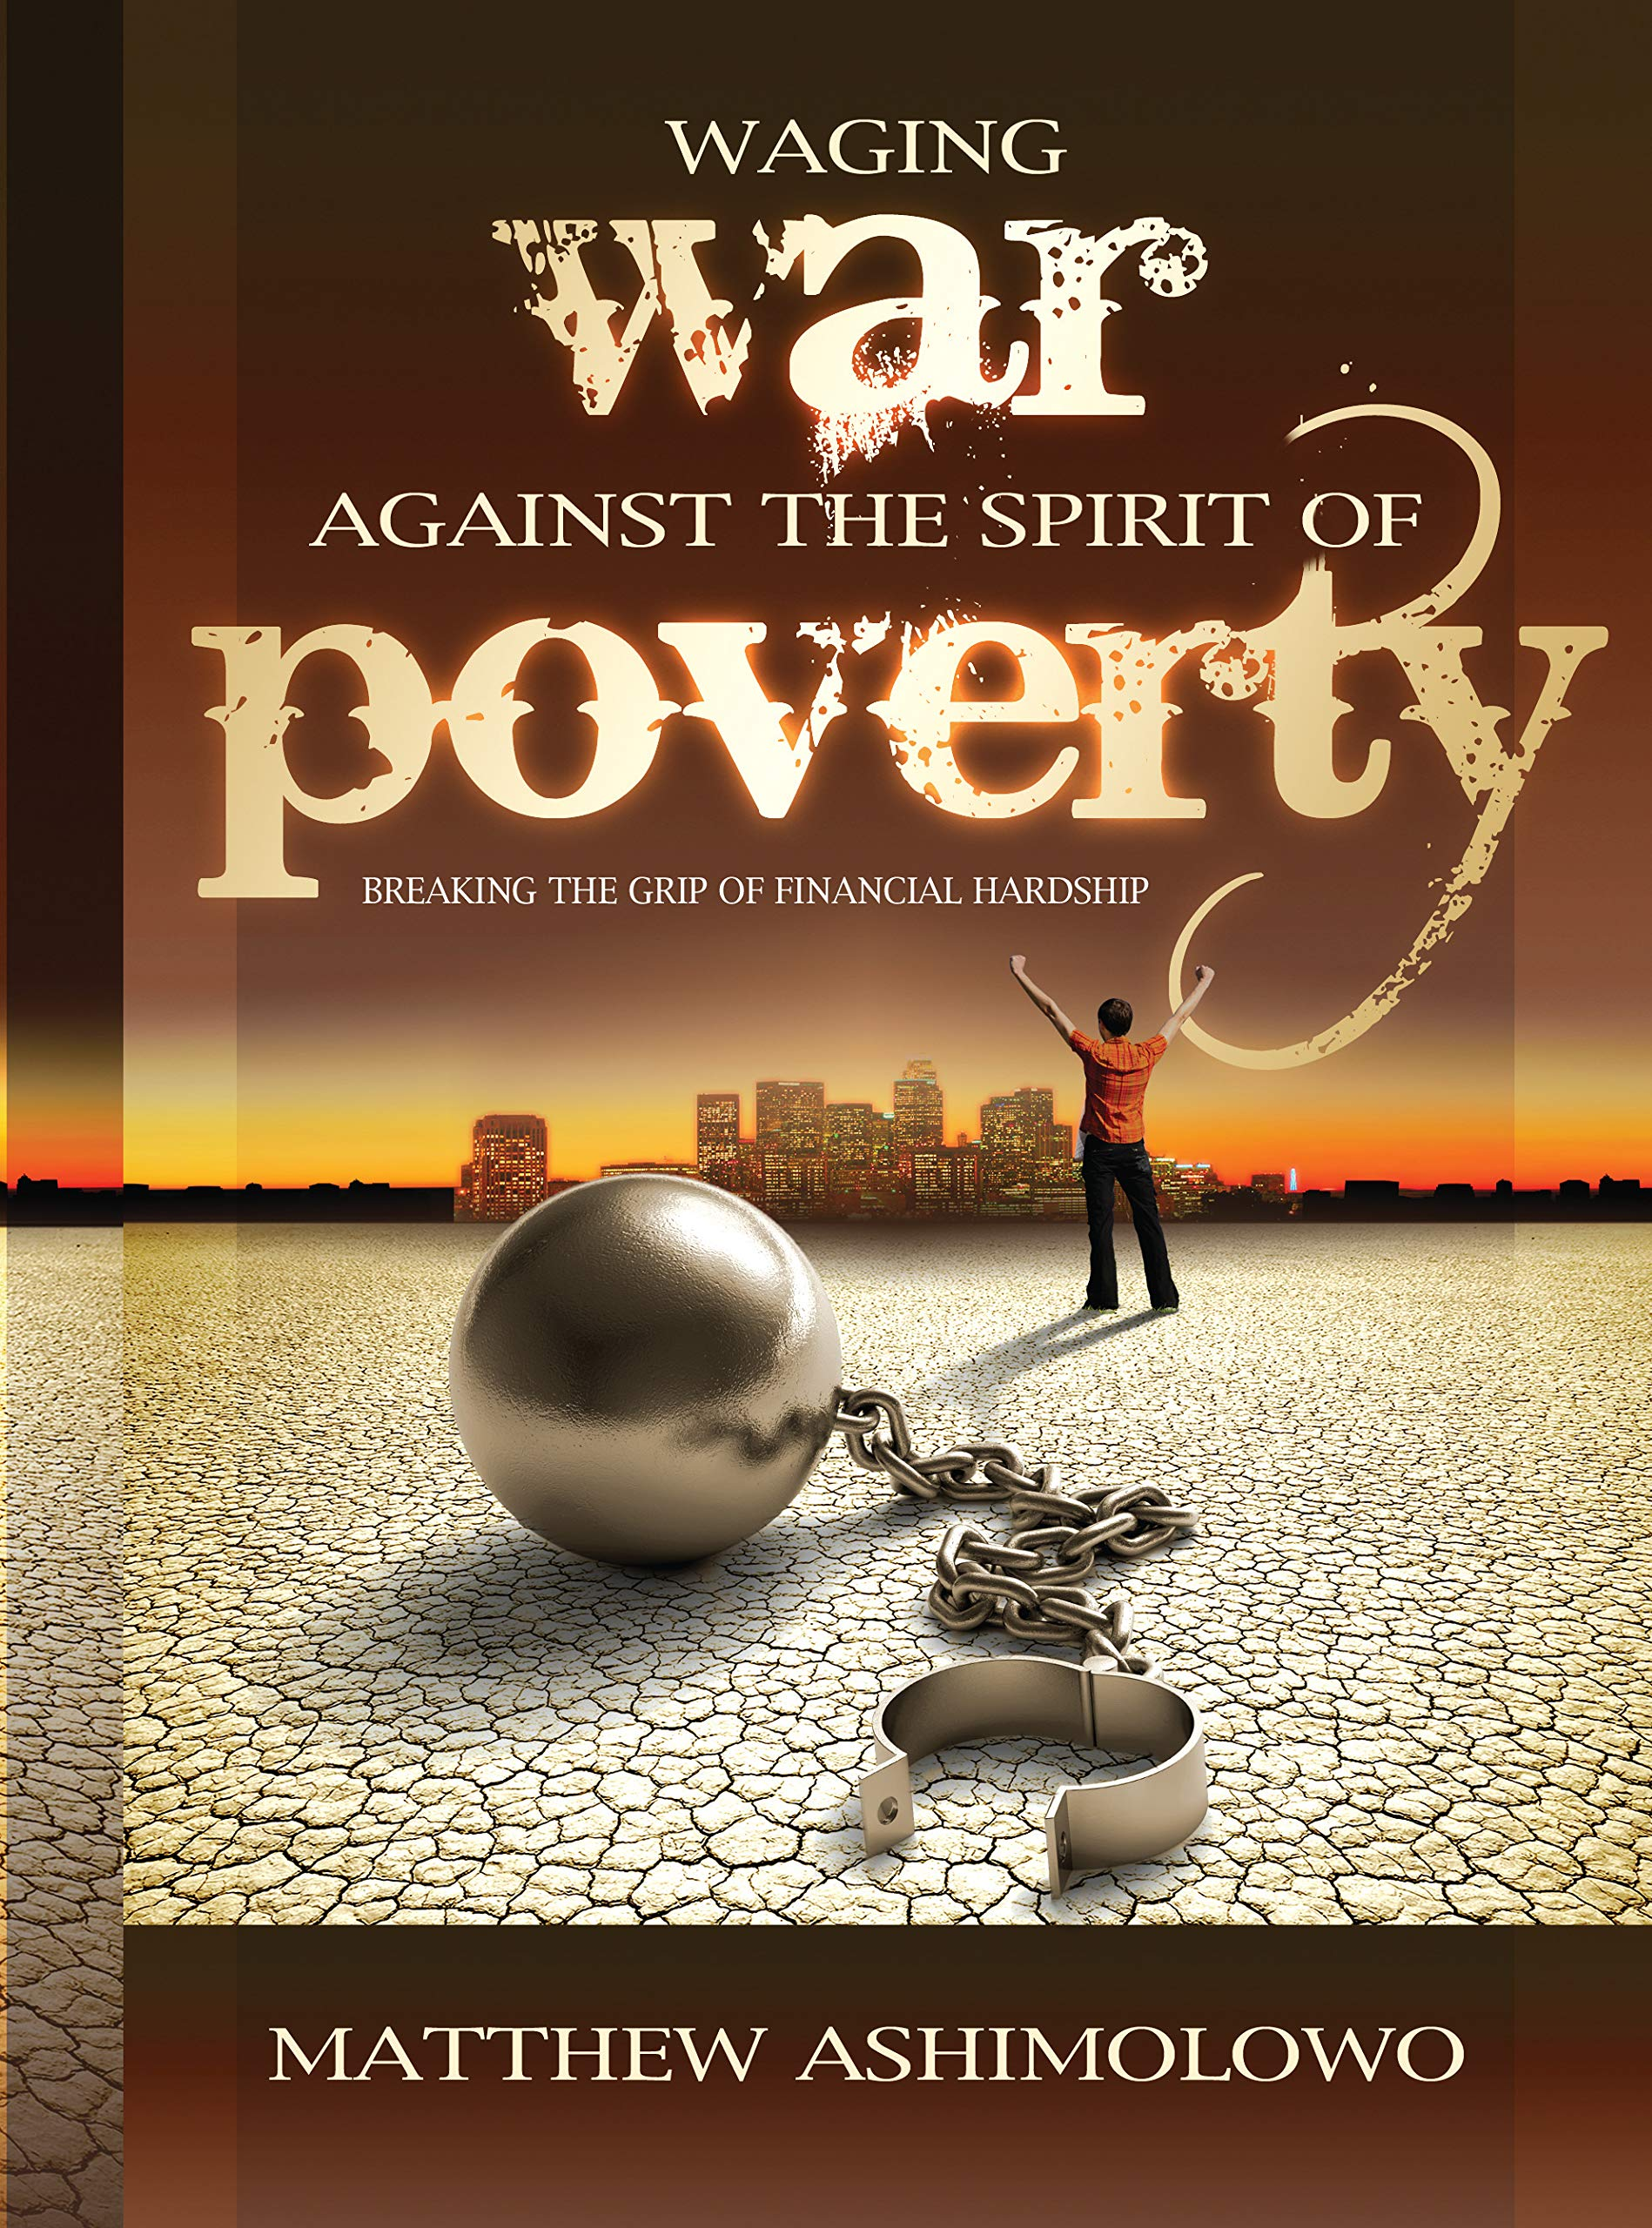 Waging war against the spirit of poverty: Breaking the grip of financial hardship